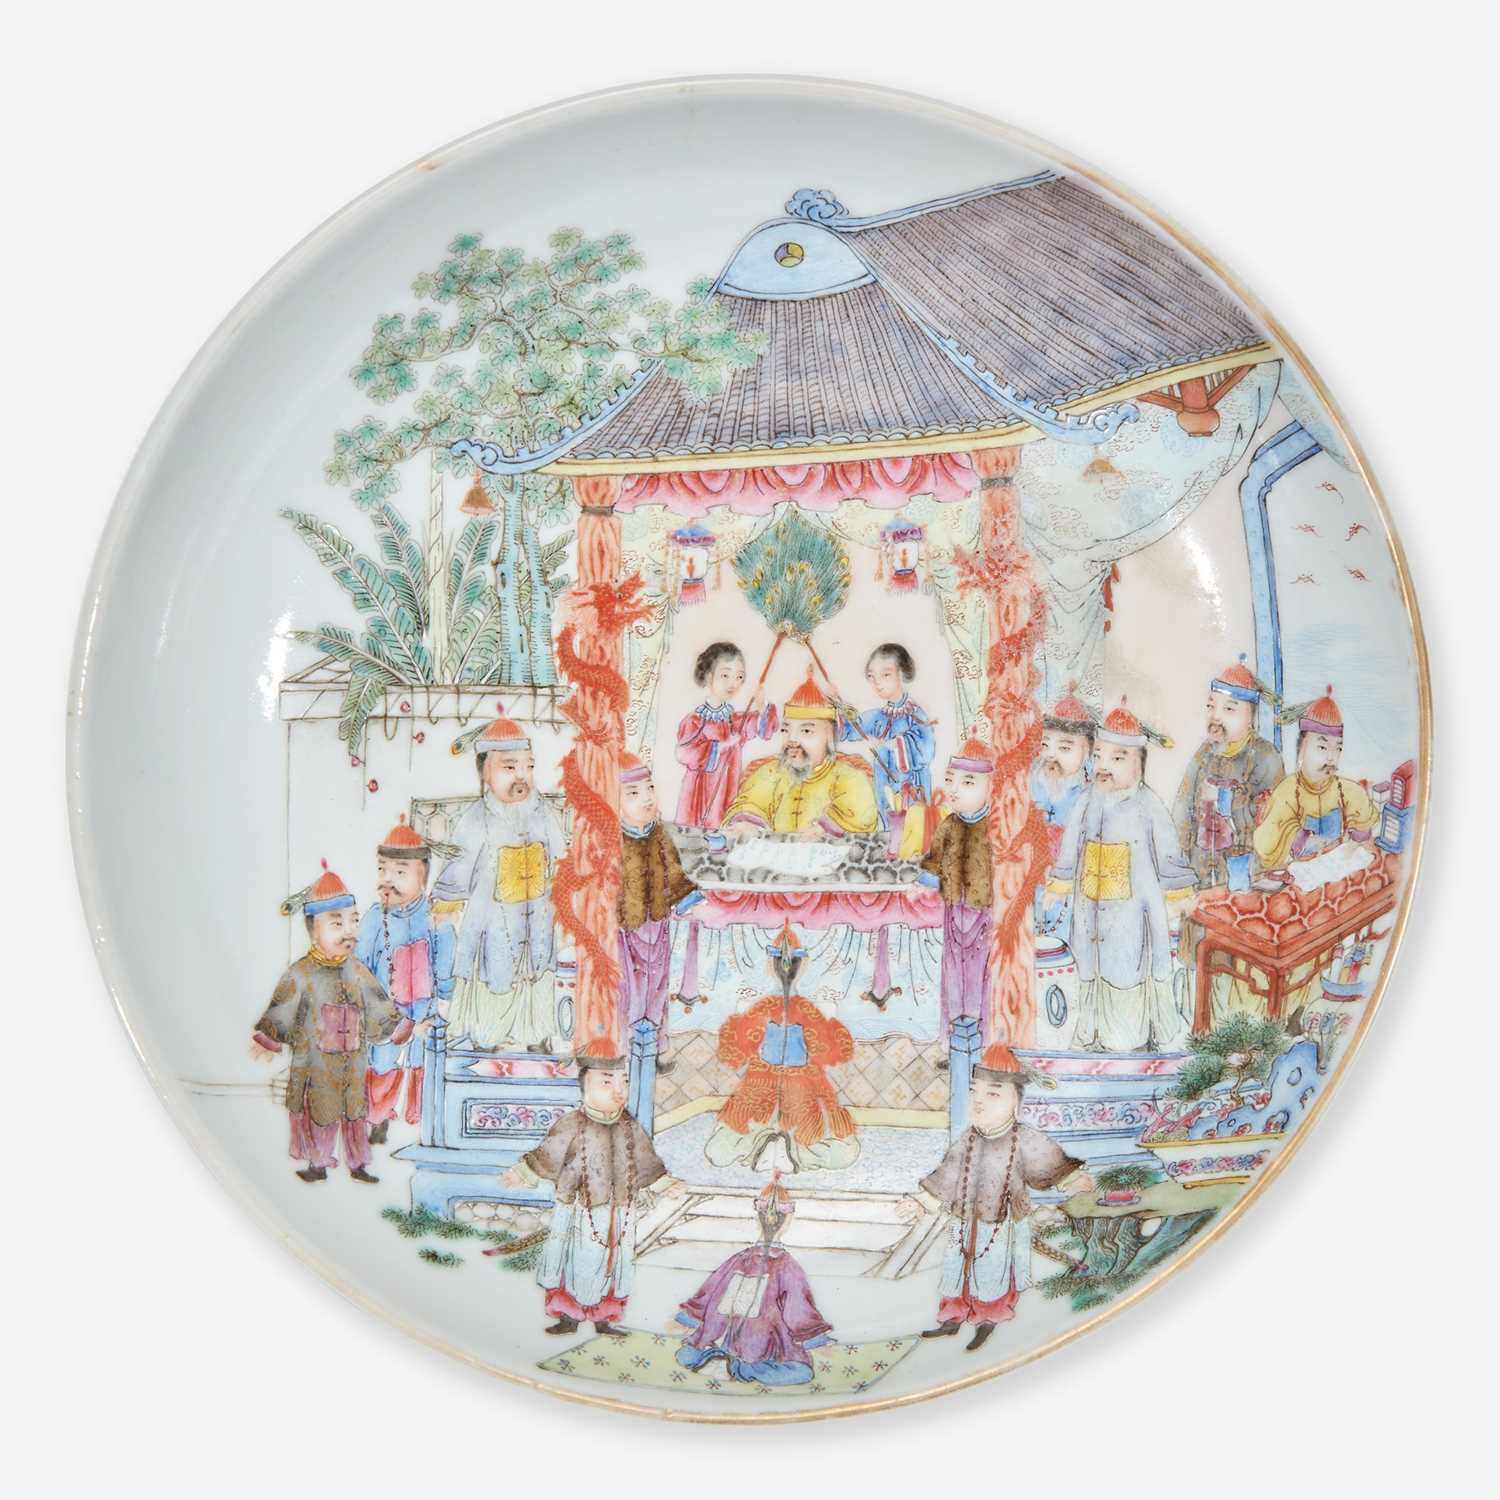 Lot 30 - A Chinese famille rose-decorated porcelain small dish 粉彩人物小盘